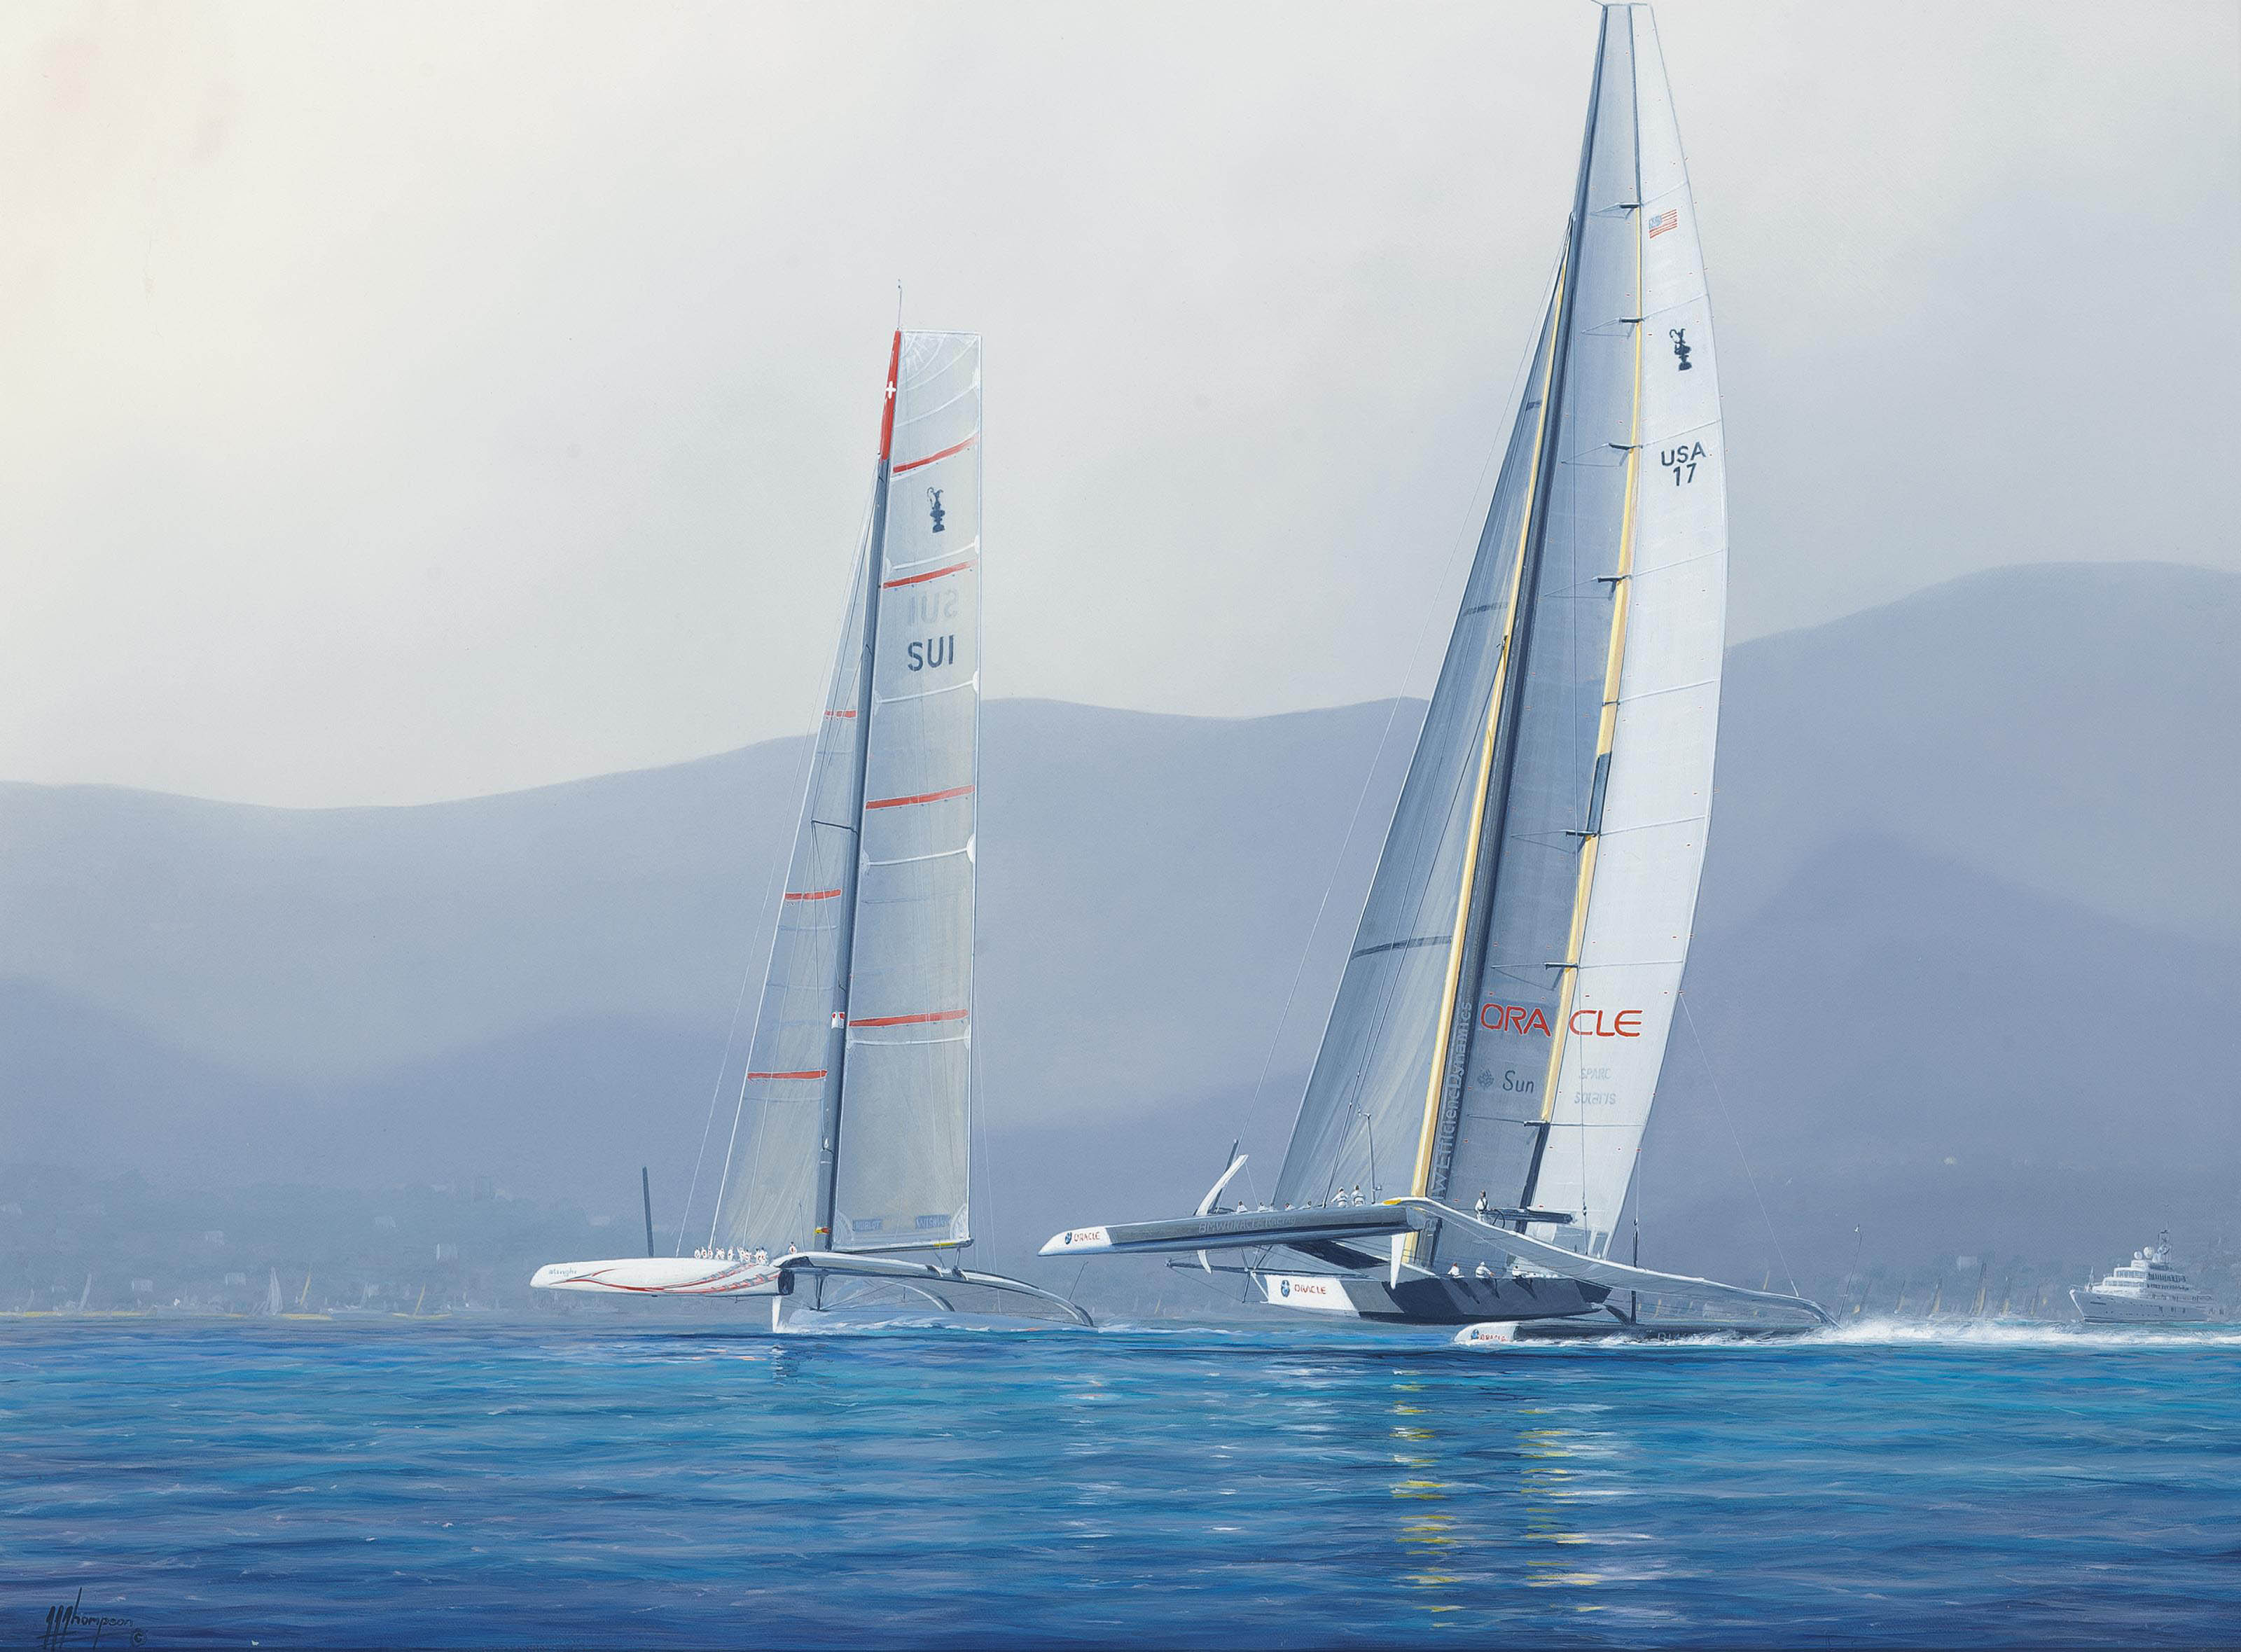 The America's Cup, Valencia, Spain, 2010: Oracle versus Alinghi